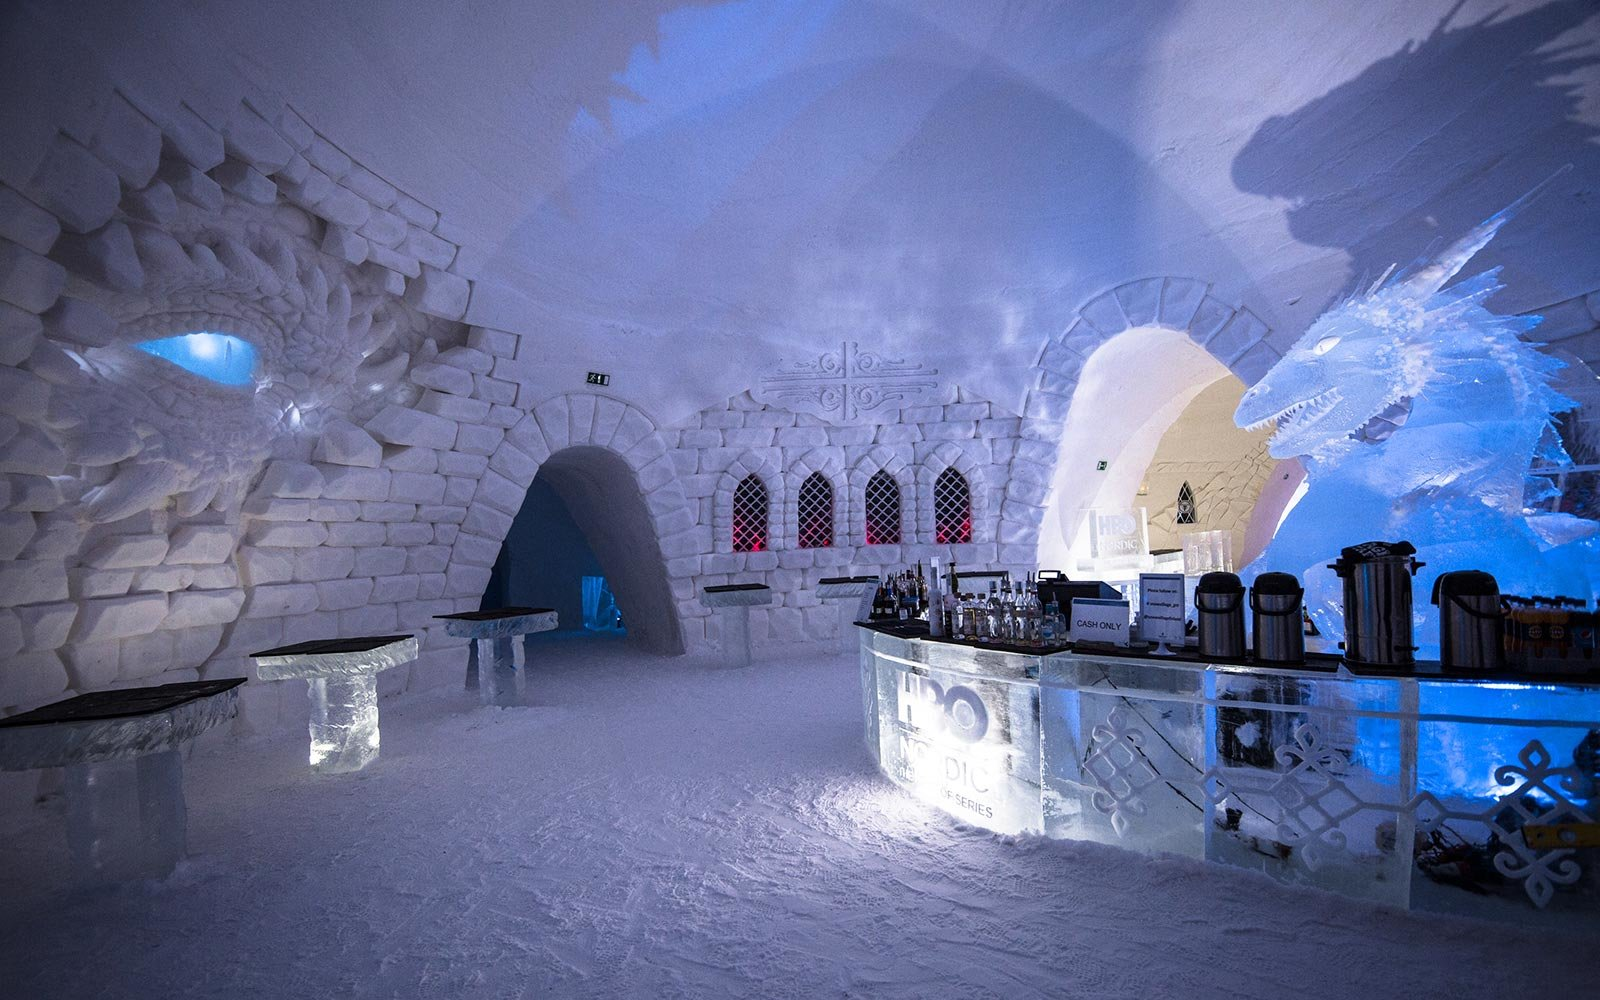 Game of Thrones HBO Nordic Ice Hotel Snow Village Lapland Finland